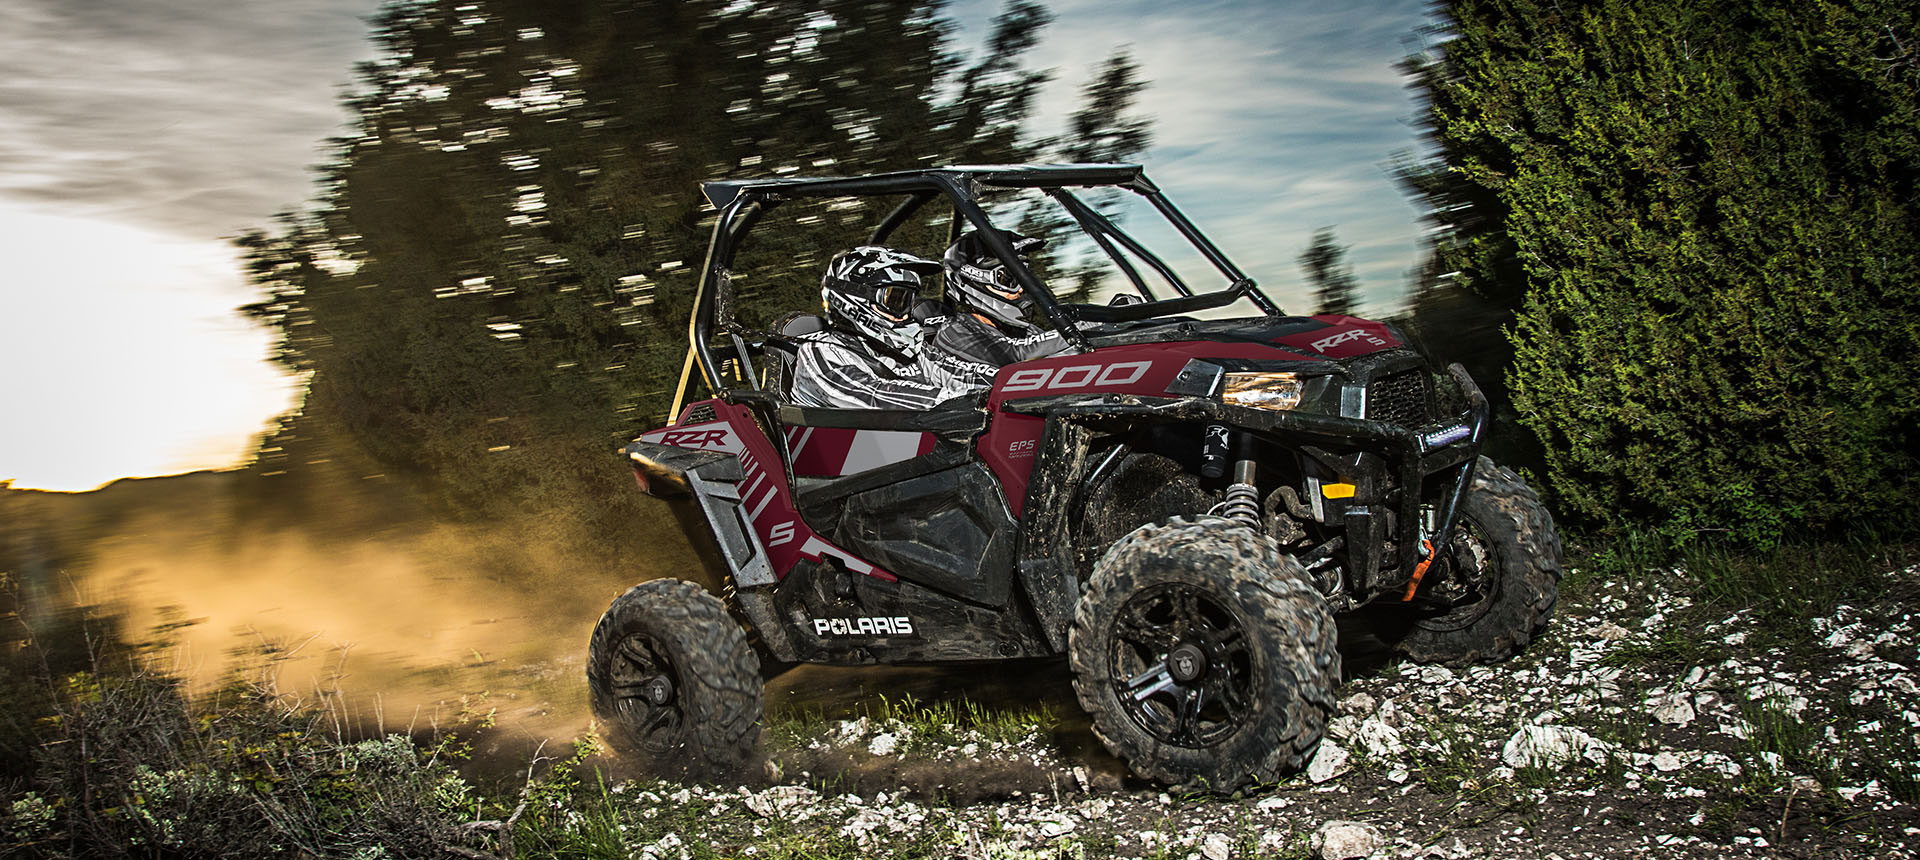 2020 RZR<sup>®</sup> Trail S 900 Instagram image 3